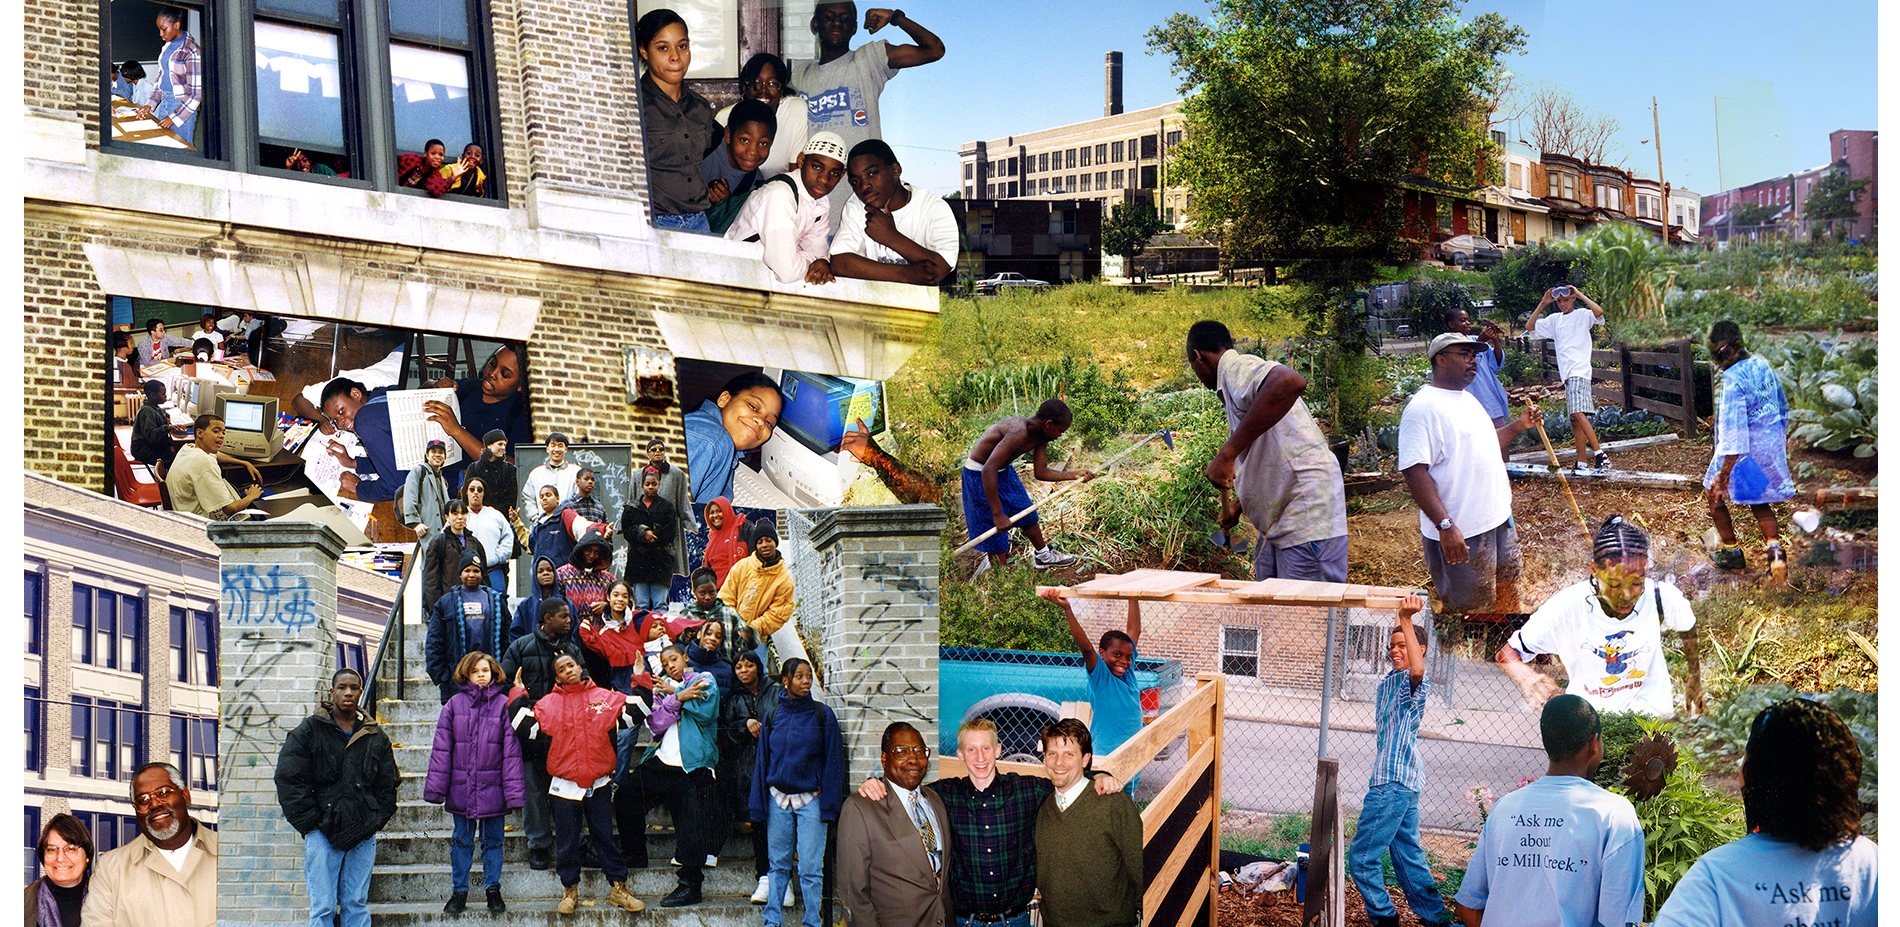 When Learning Is Real: The Mill Creek Project (1994-2002)